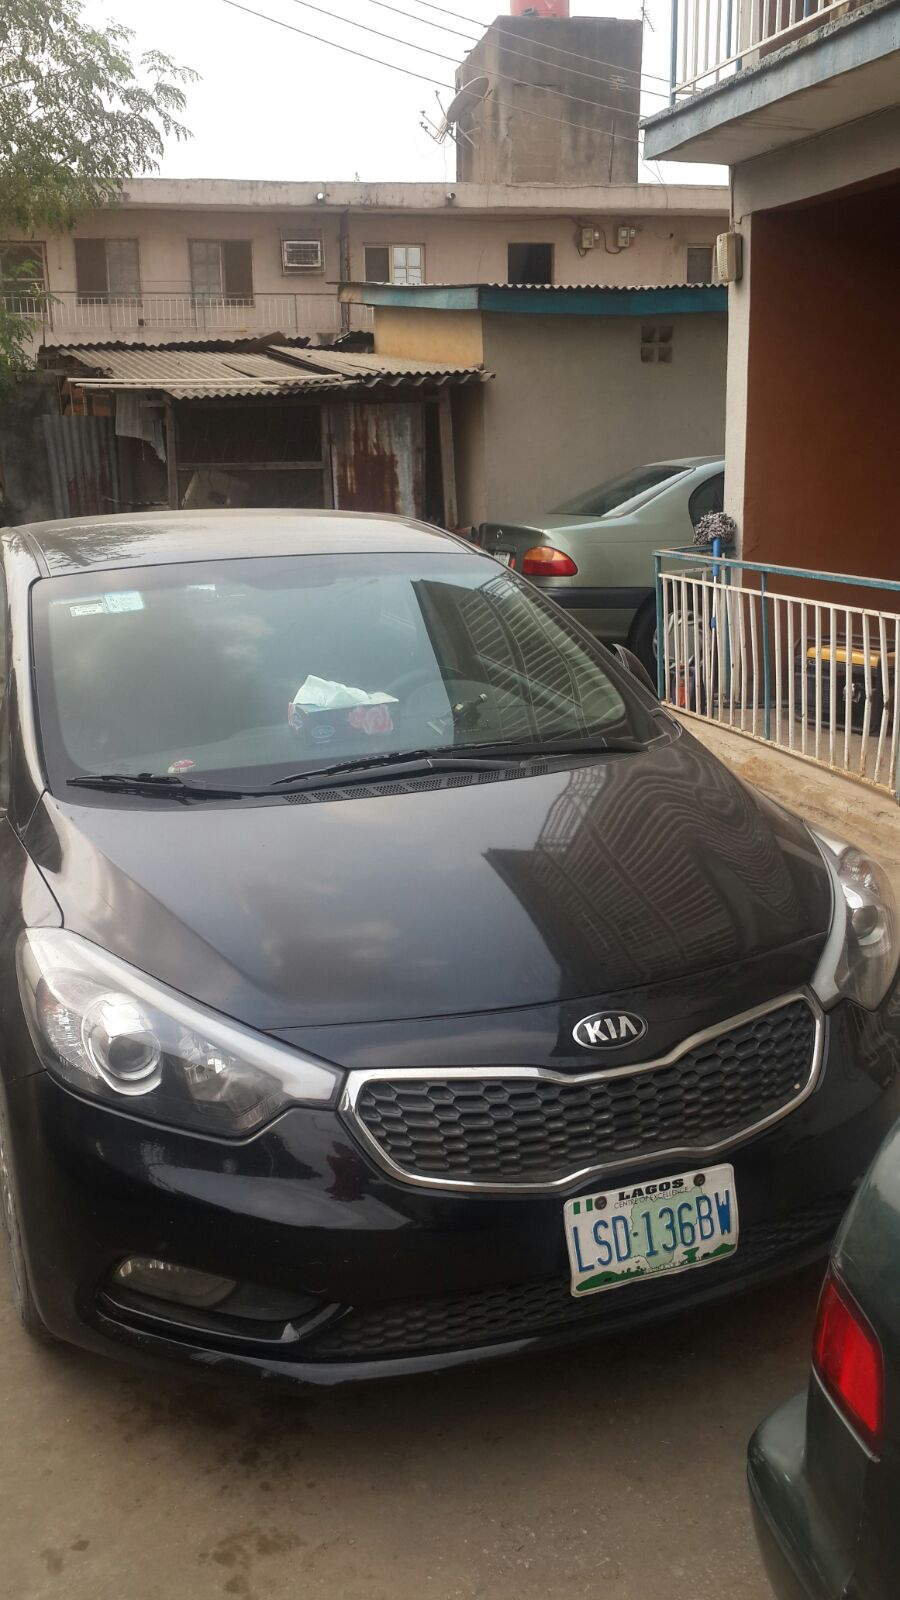 Sold Soldvery Well Used 2013 Kia Cerato Autos Nigeria Under Hood Call 07083206719 Whatsapp 08056173266